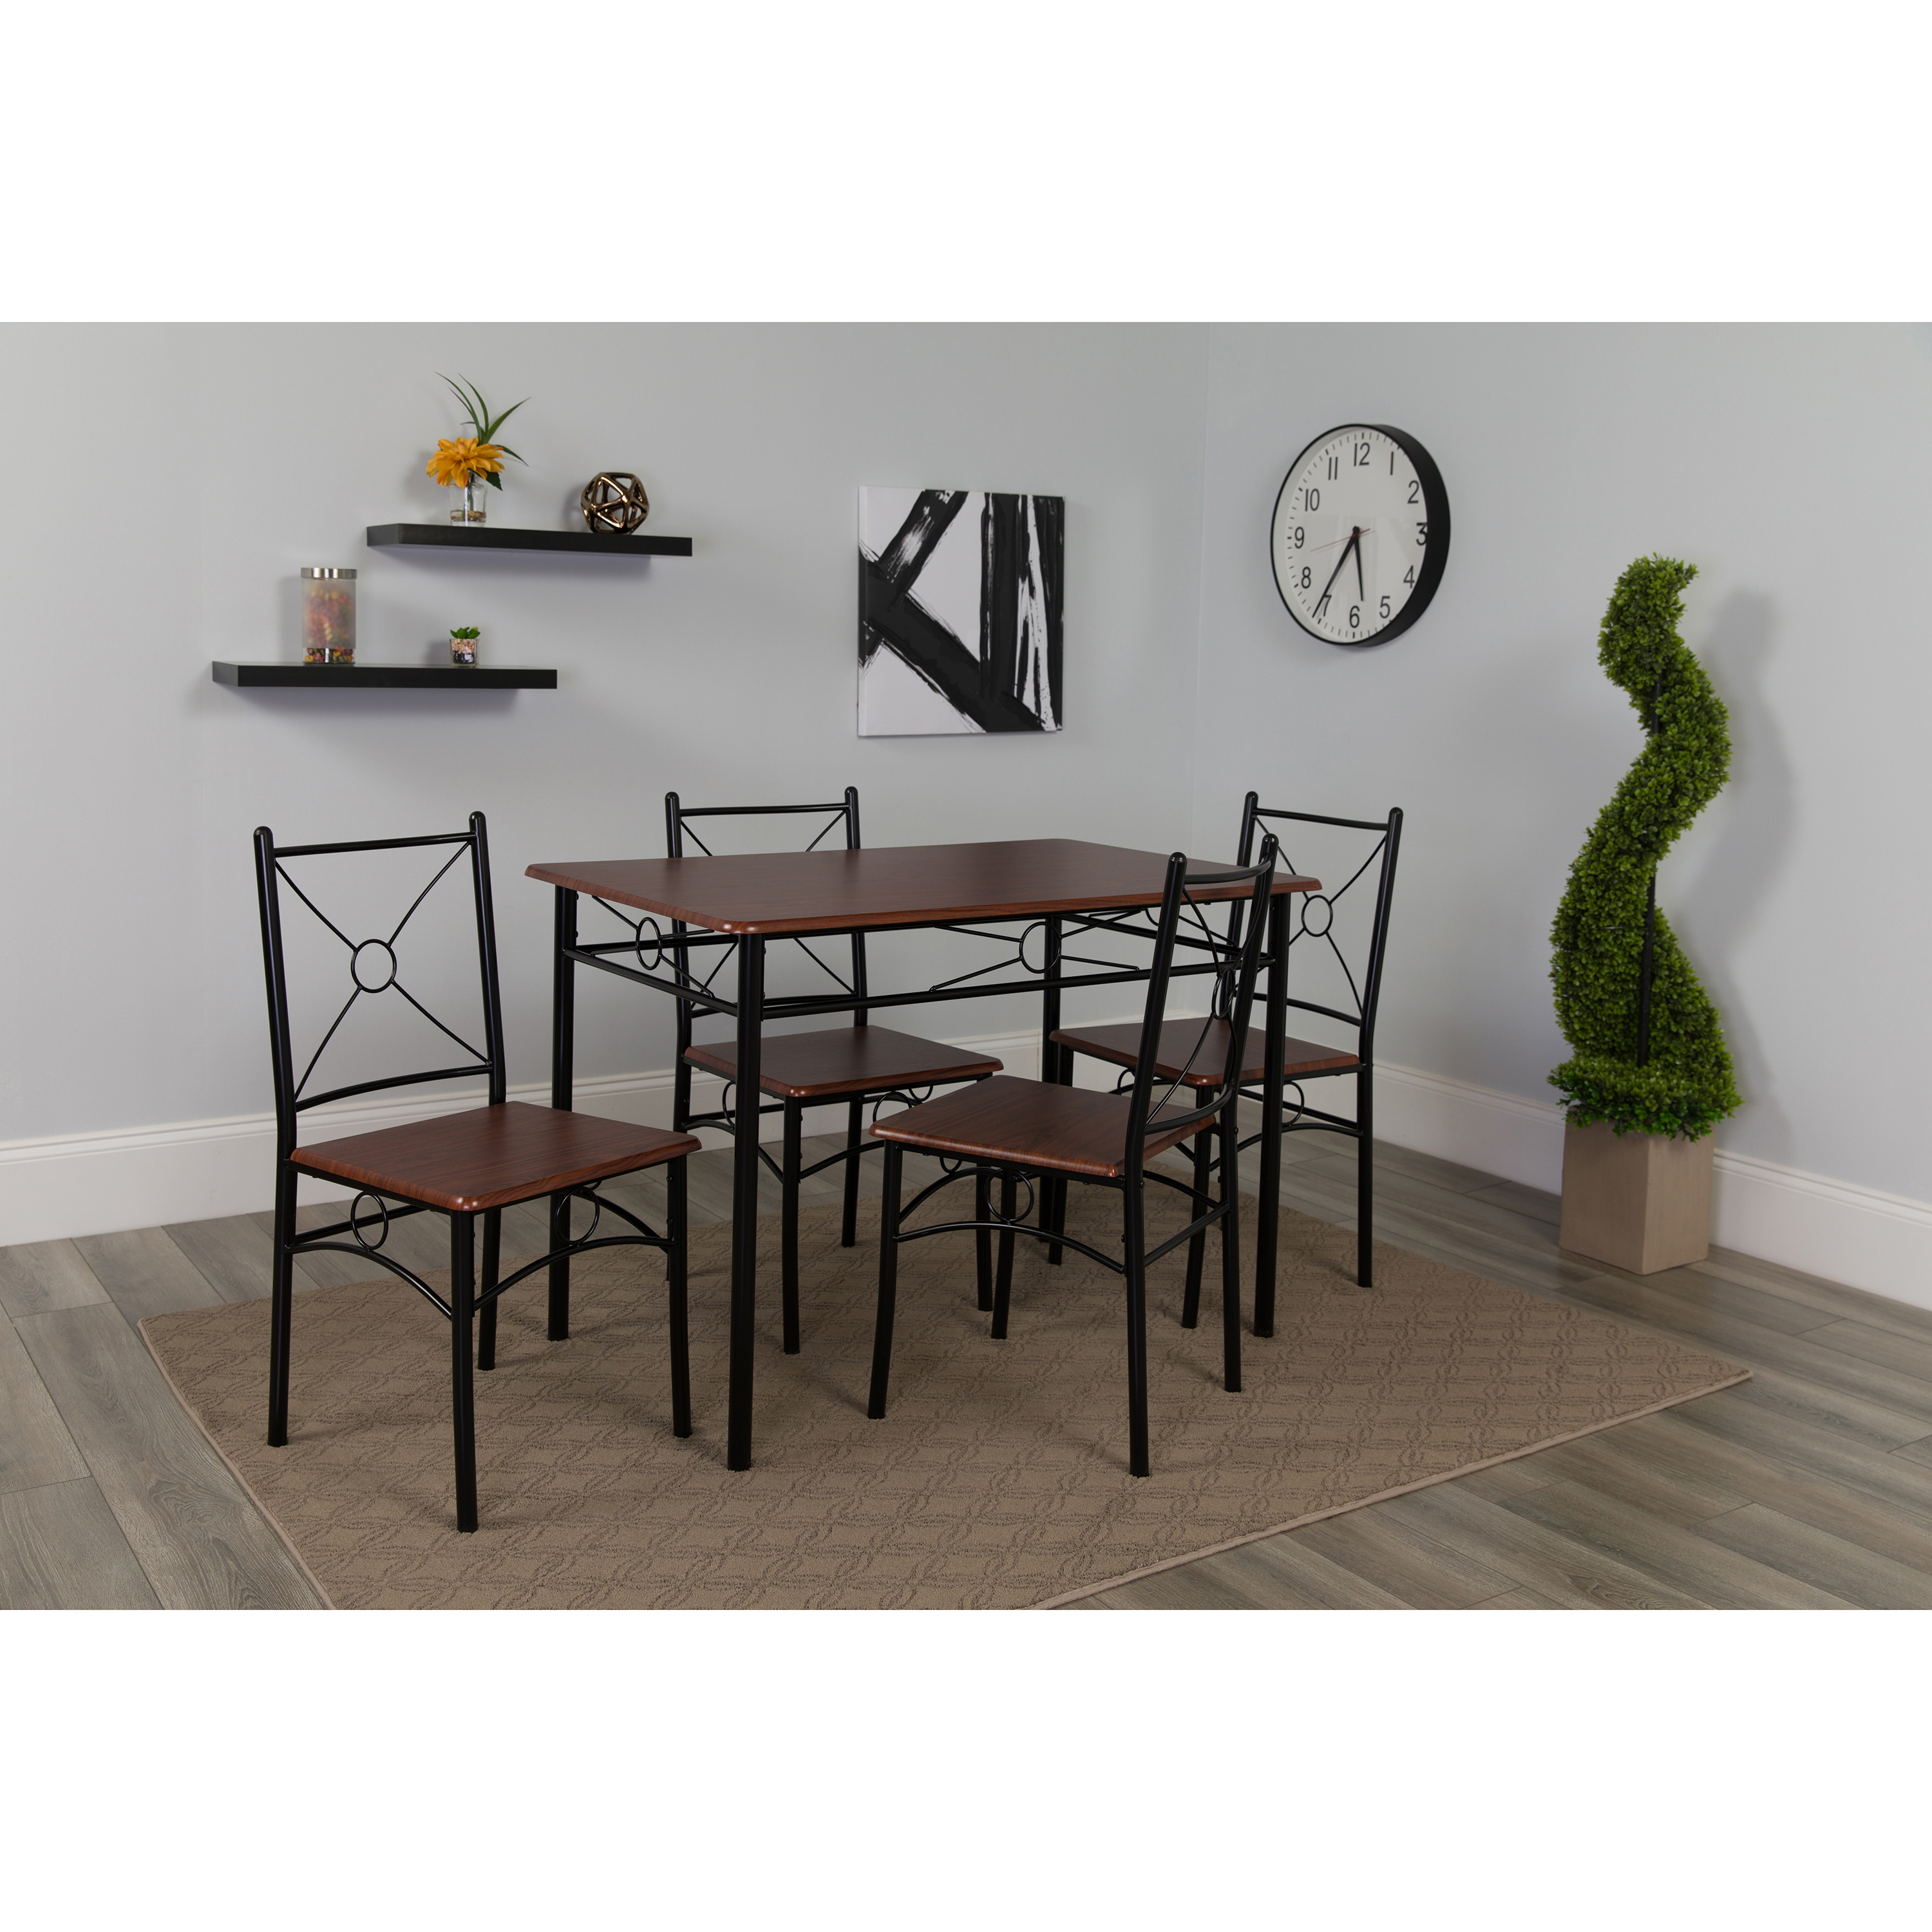 Flash Furniture Sutton Place 5 Piece Mahogany Finish Dinette Set with Chairs